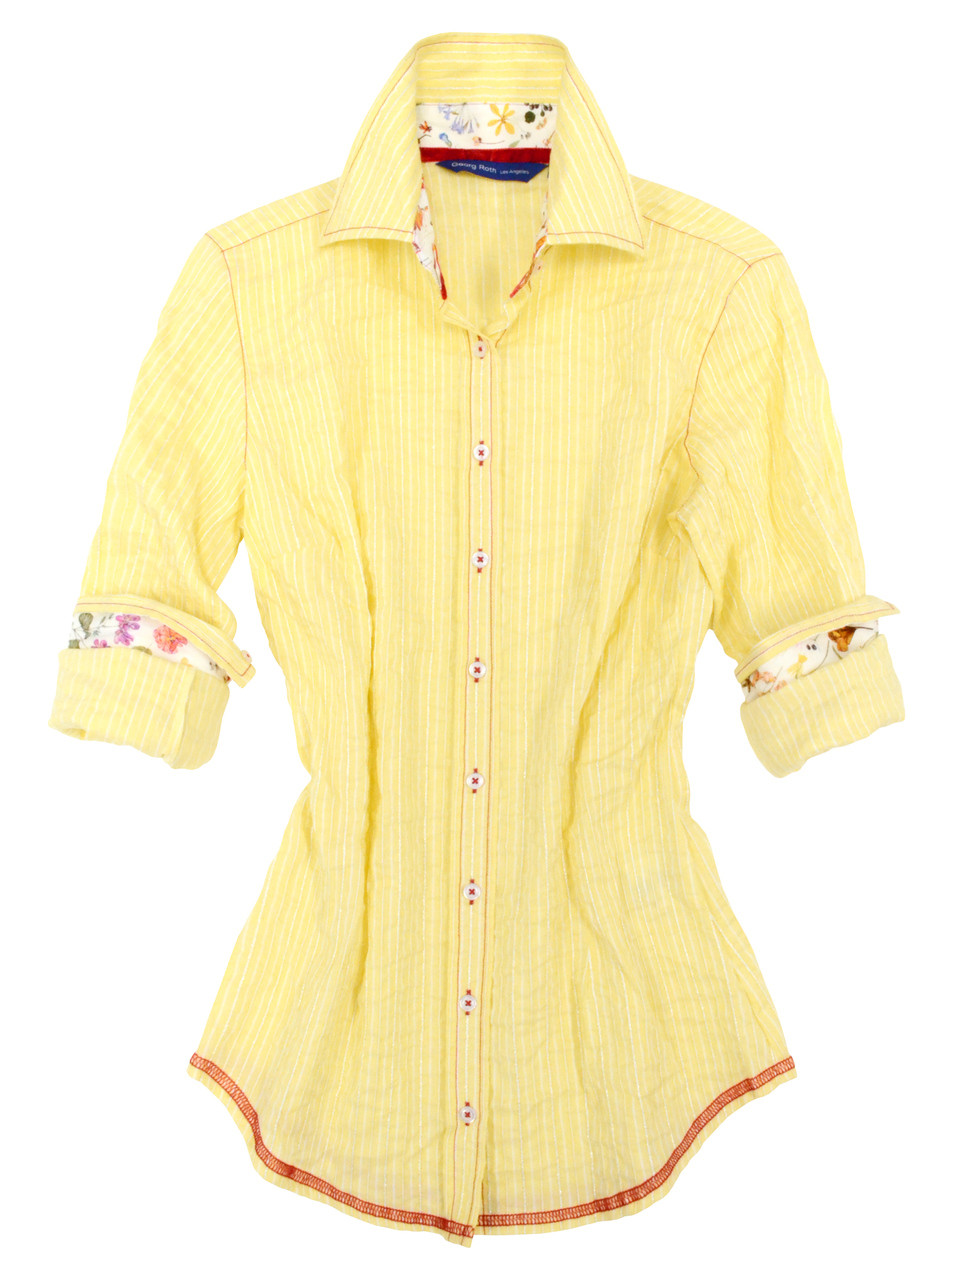 8f35efb29ca Yellow and white-metallic stripe. Contrasted with a Liberty of London  multicolor floral print